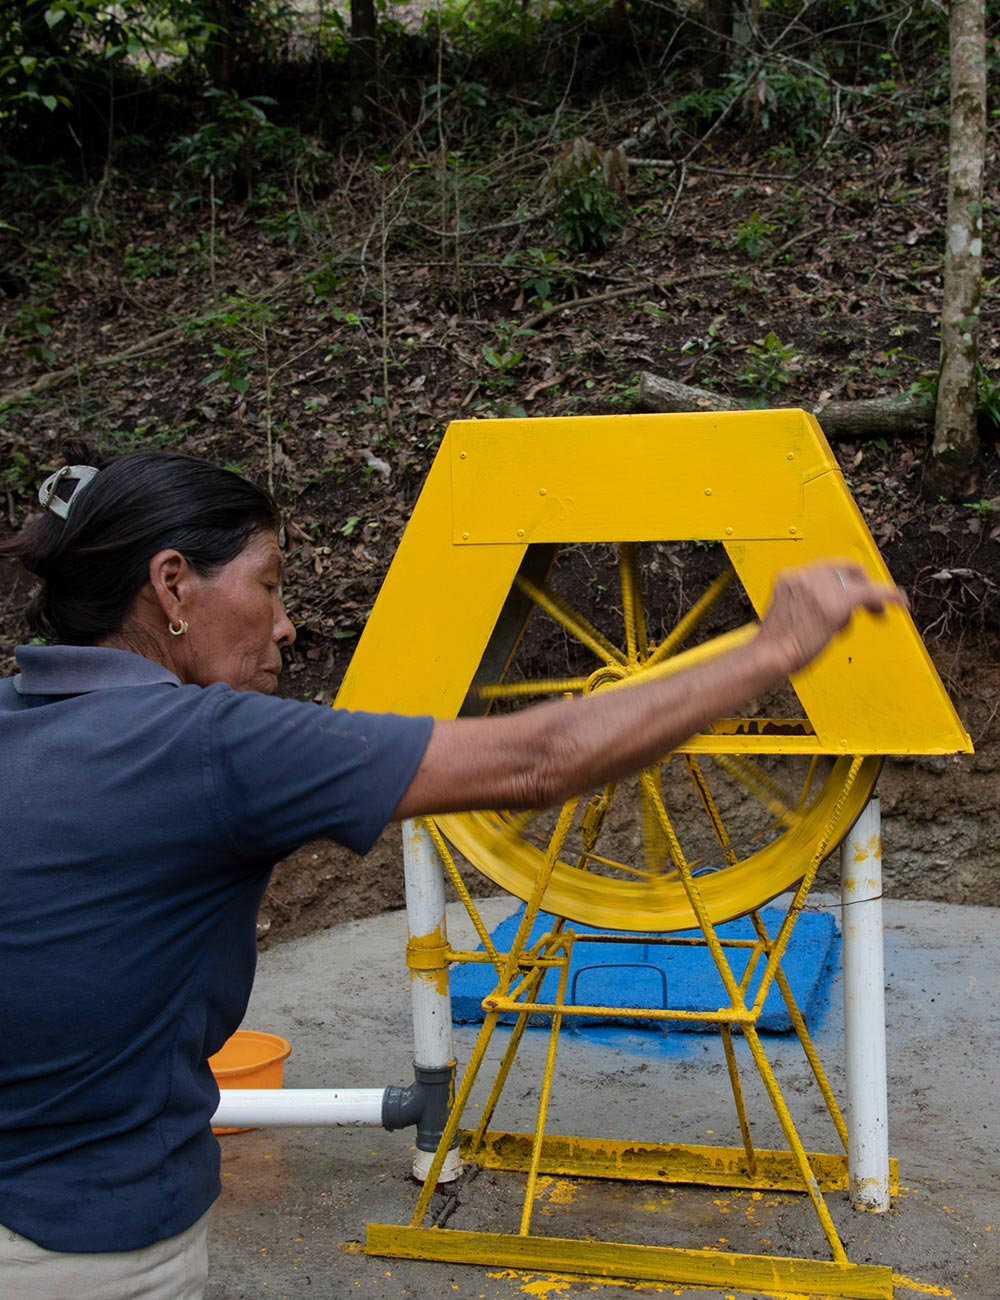 Clean Water Access - Totogalpa, Nicaragua, 5 wells covered or refurbished, 345 people received access to clean water.